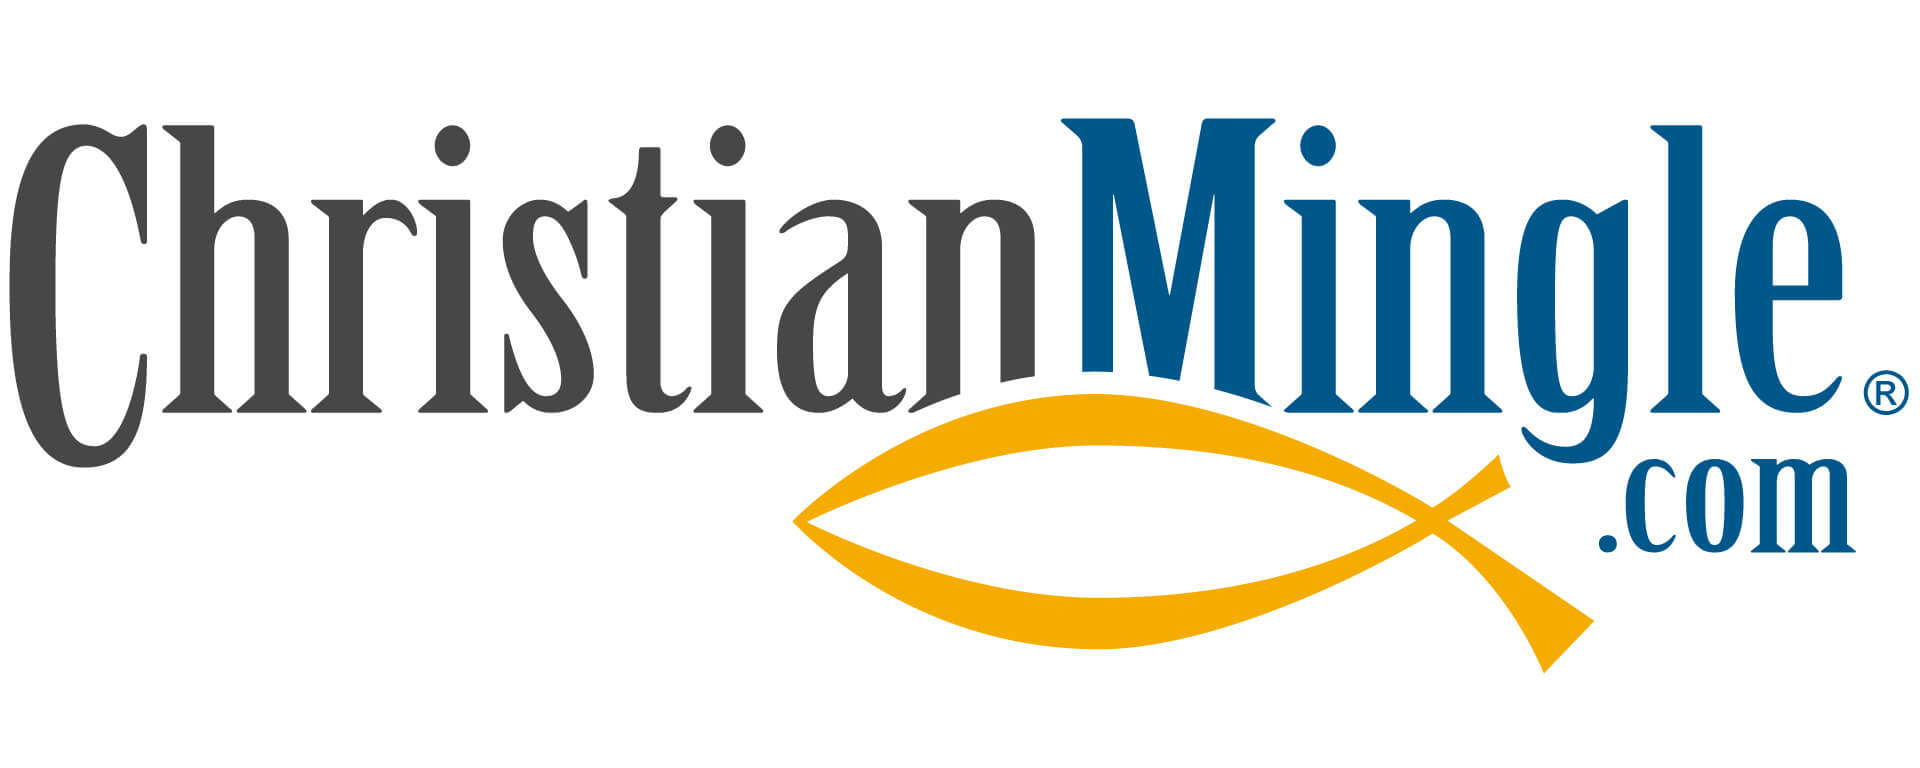 ChristianMingle Review August 2019.